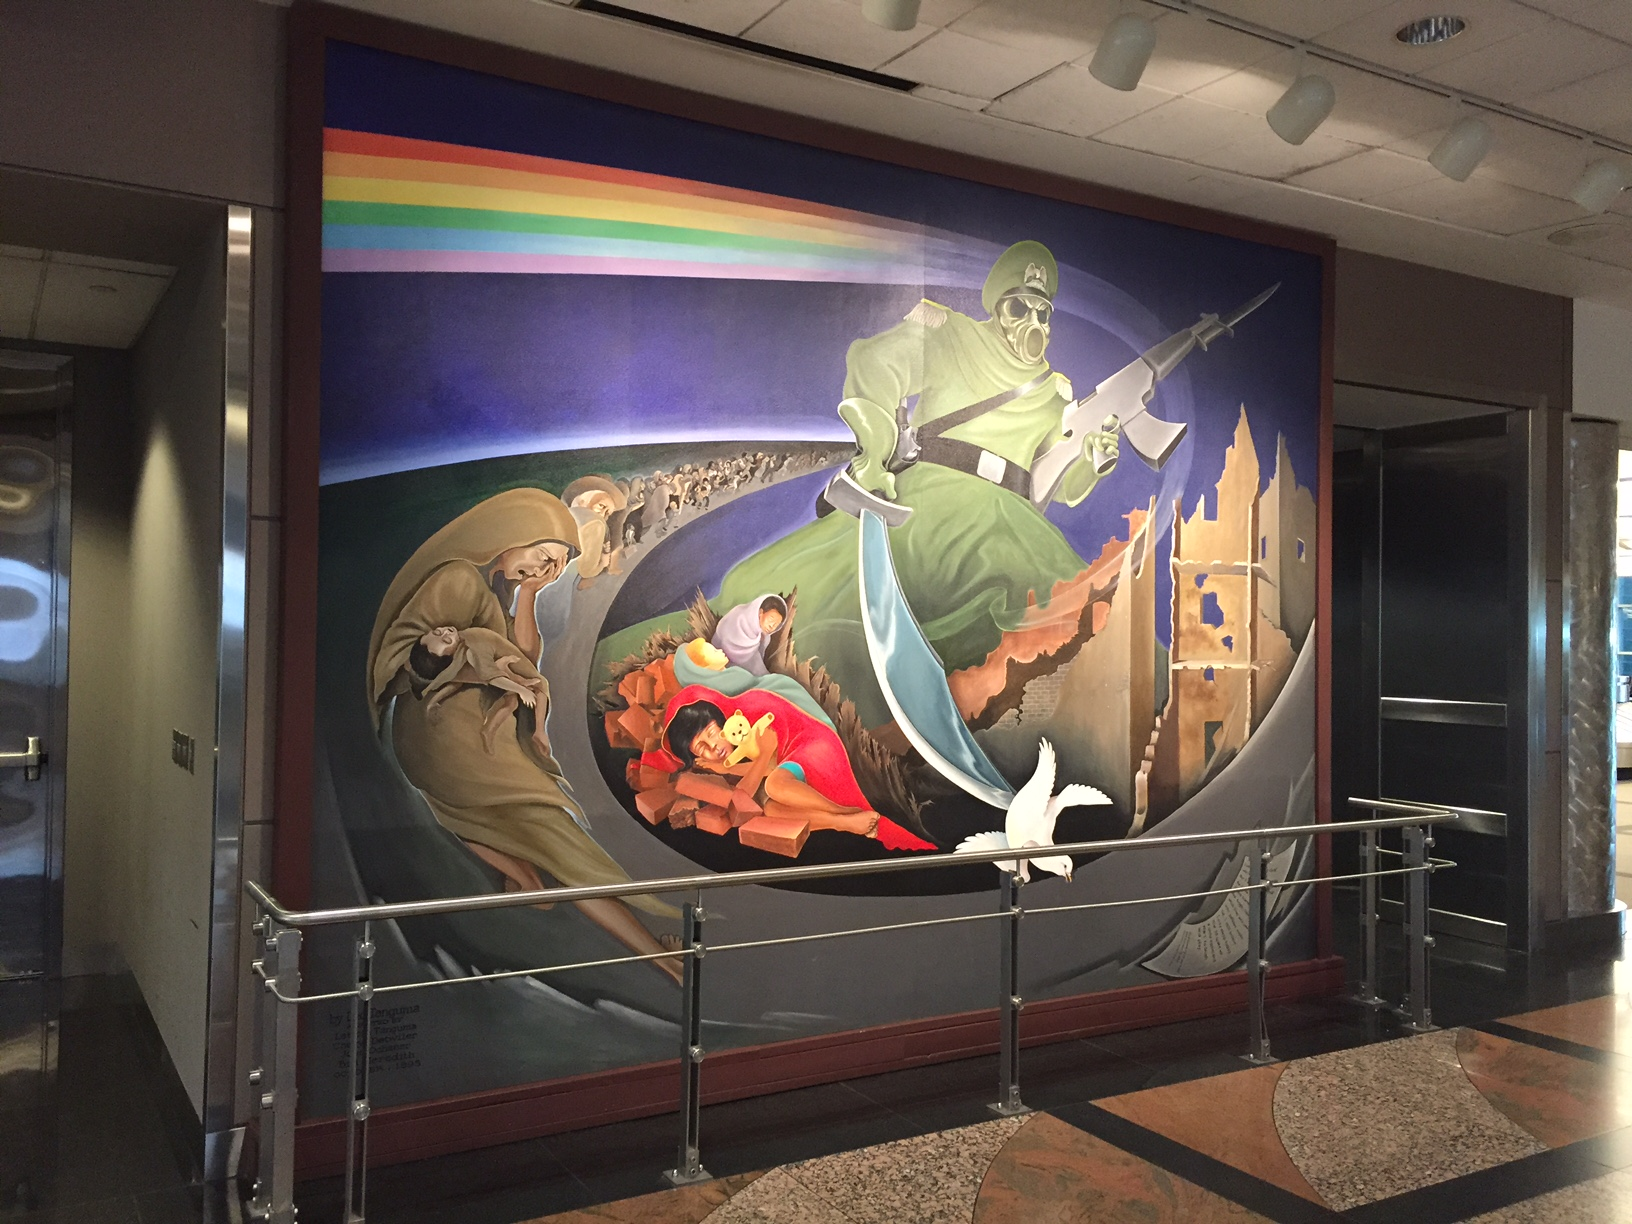 Denver Airport Painting